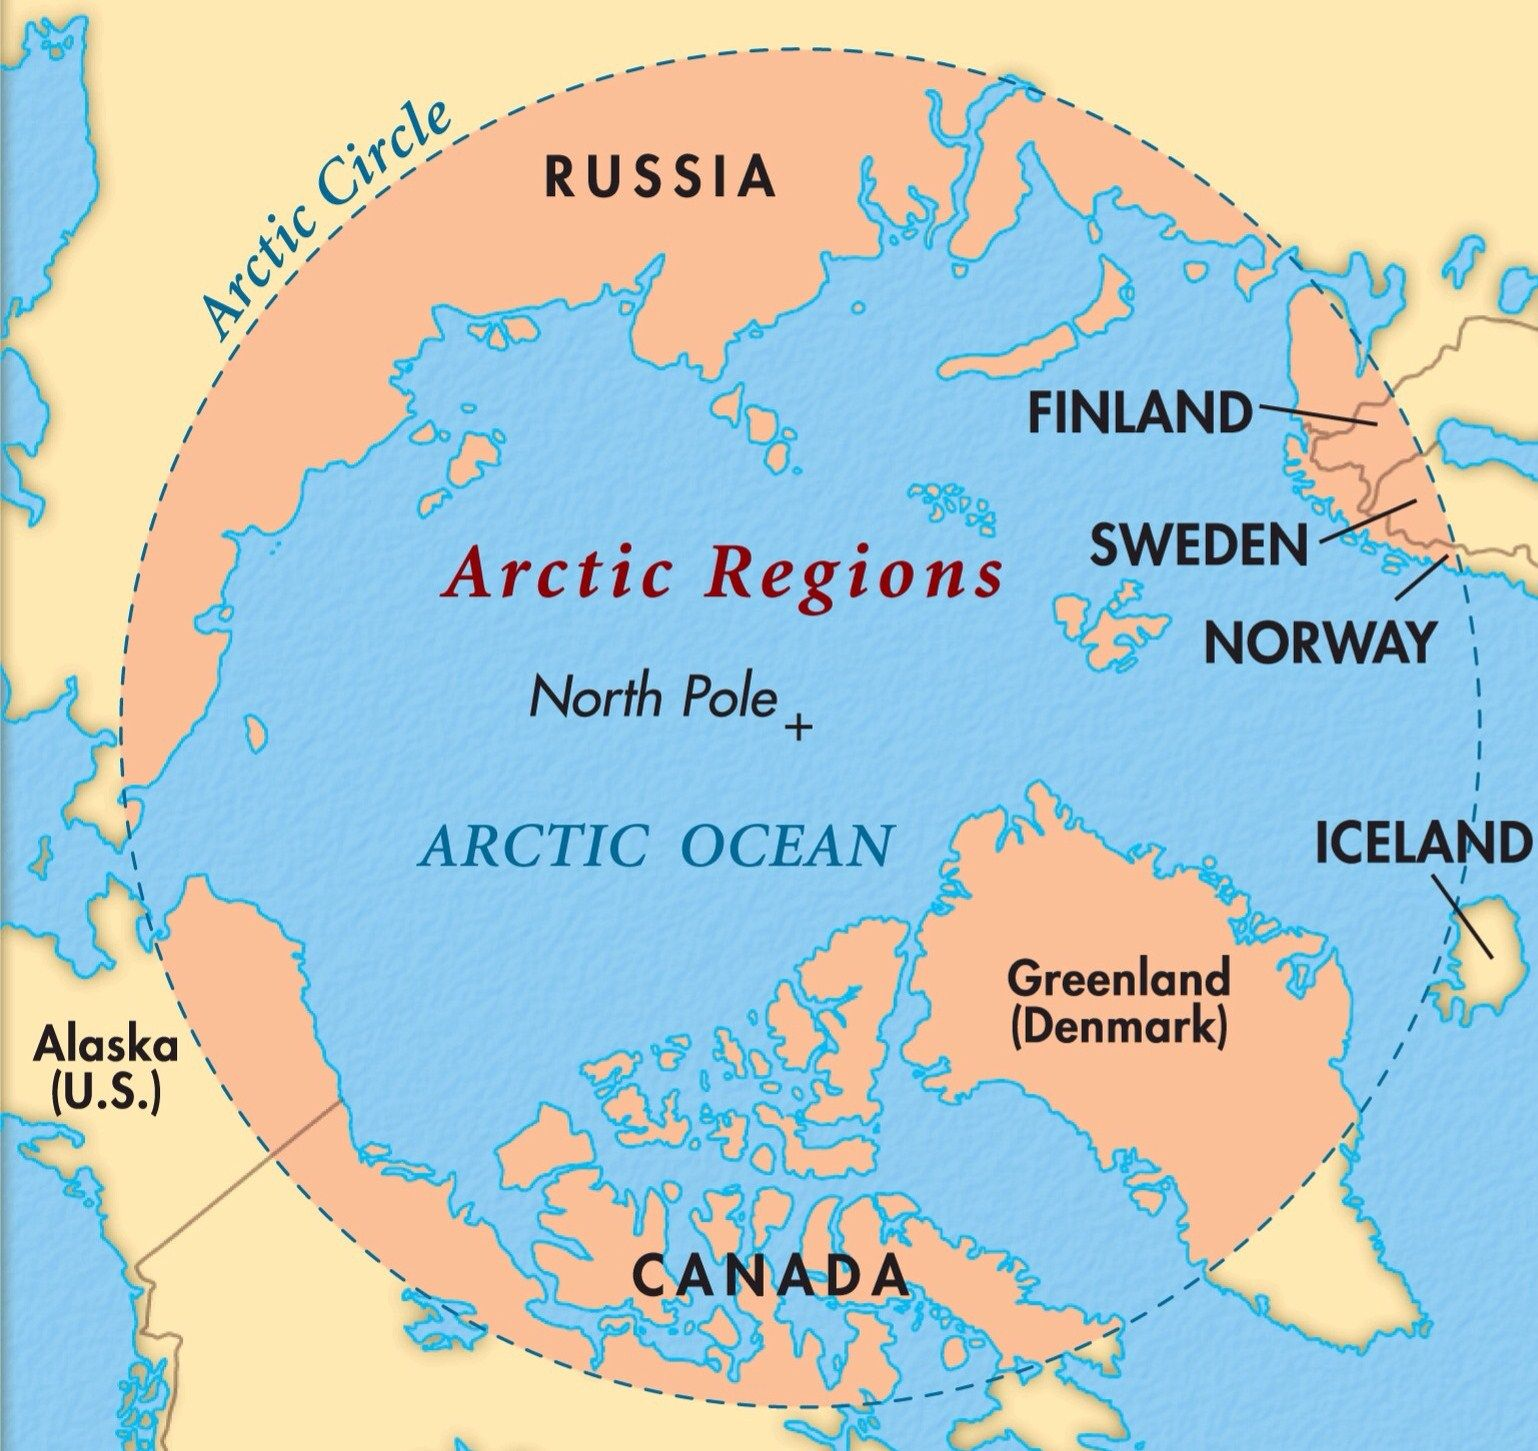 arctic circle world map Arctic Circle Maps Google Search Arctic Circle Map Arctic Circle arctic circle world map